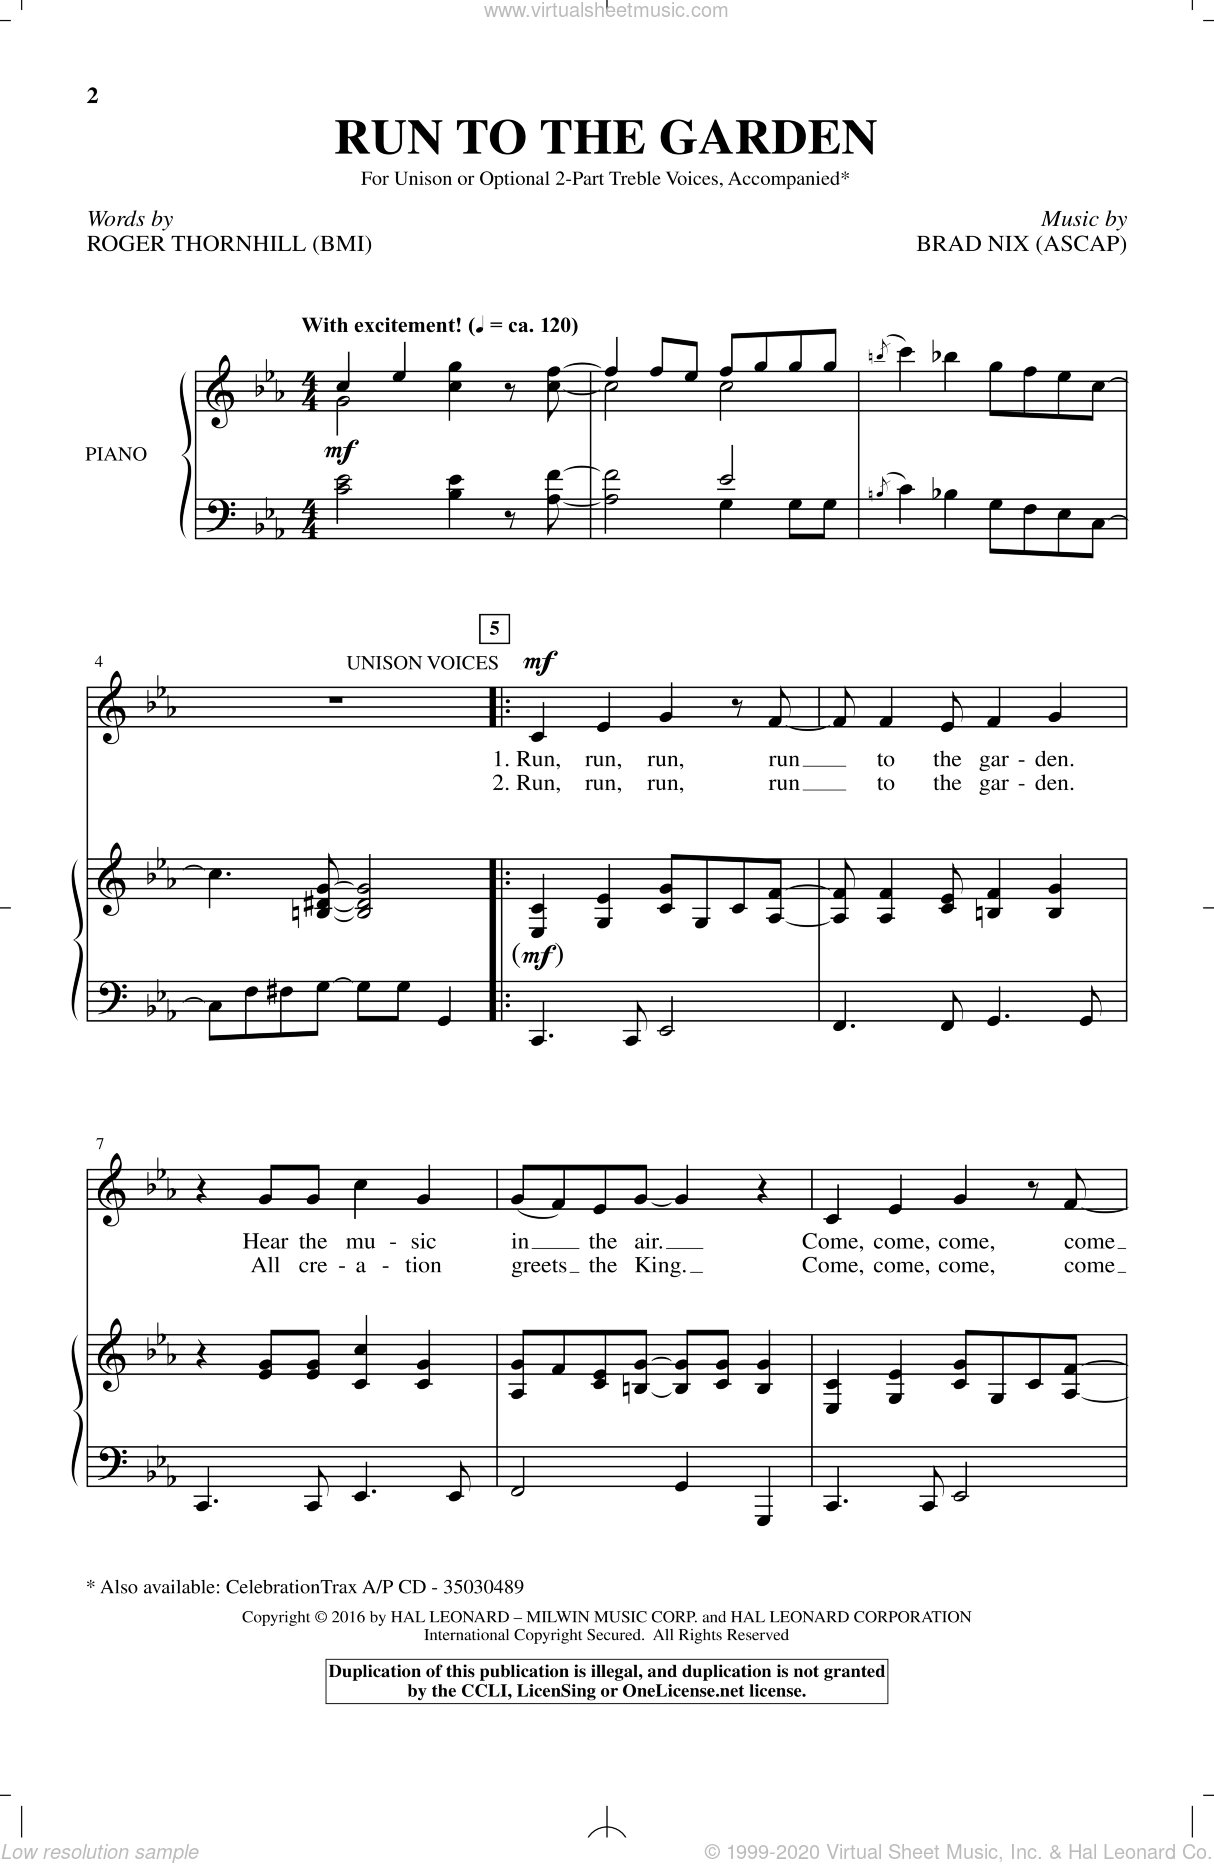 Run To The Garden sheet music for choir by Brad Nix and Roger Thornhill, intermediate skill level